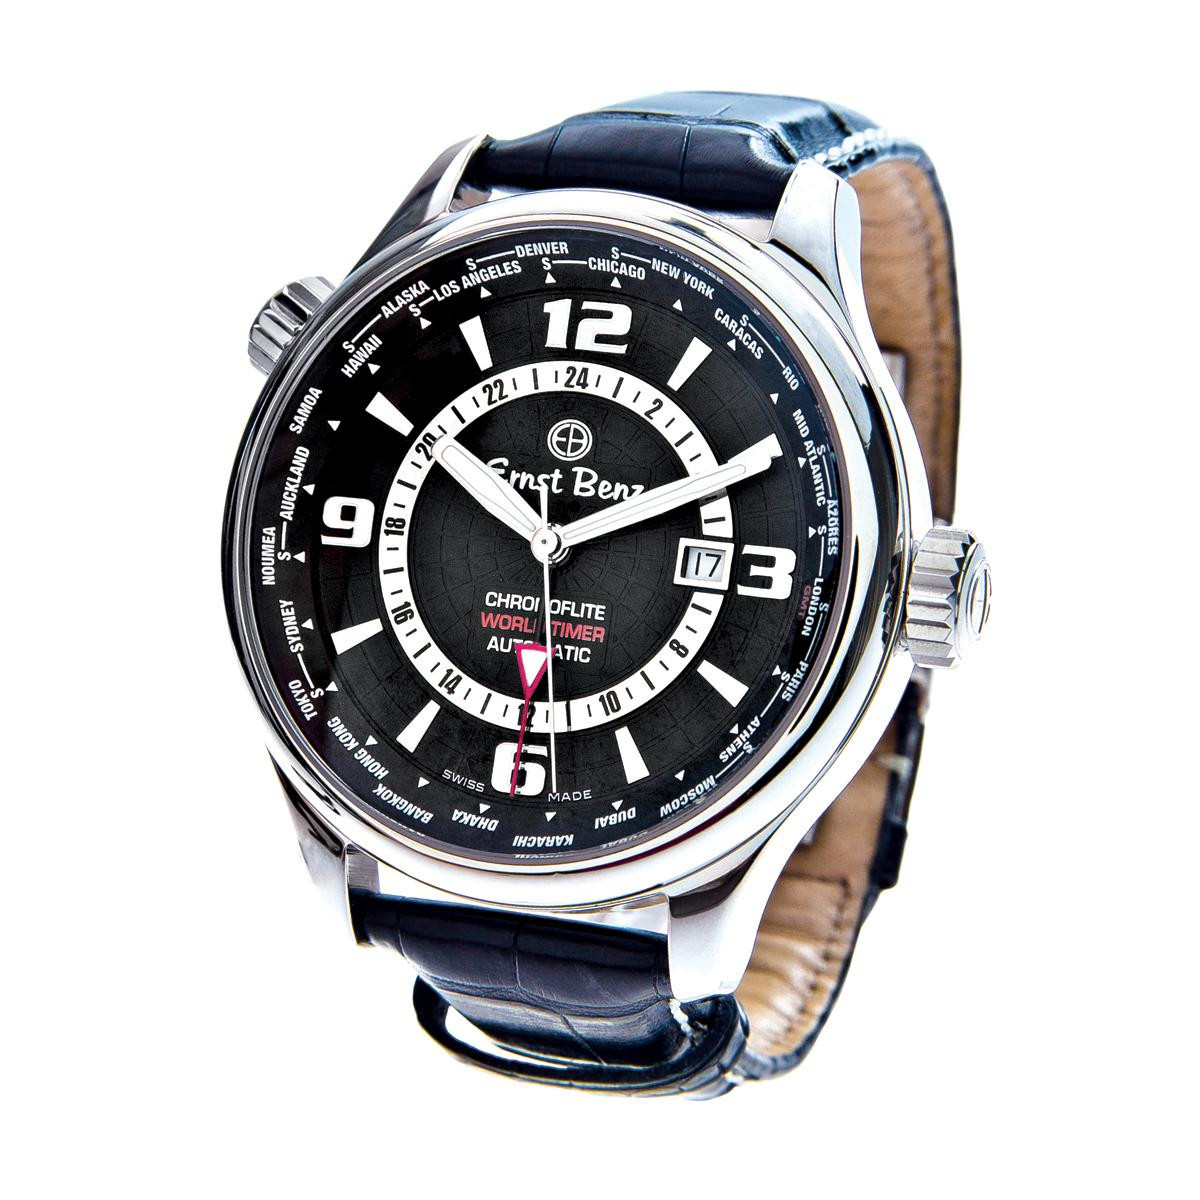 Preowned Ernst Benz ChronoFlite World Timer Watch